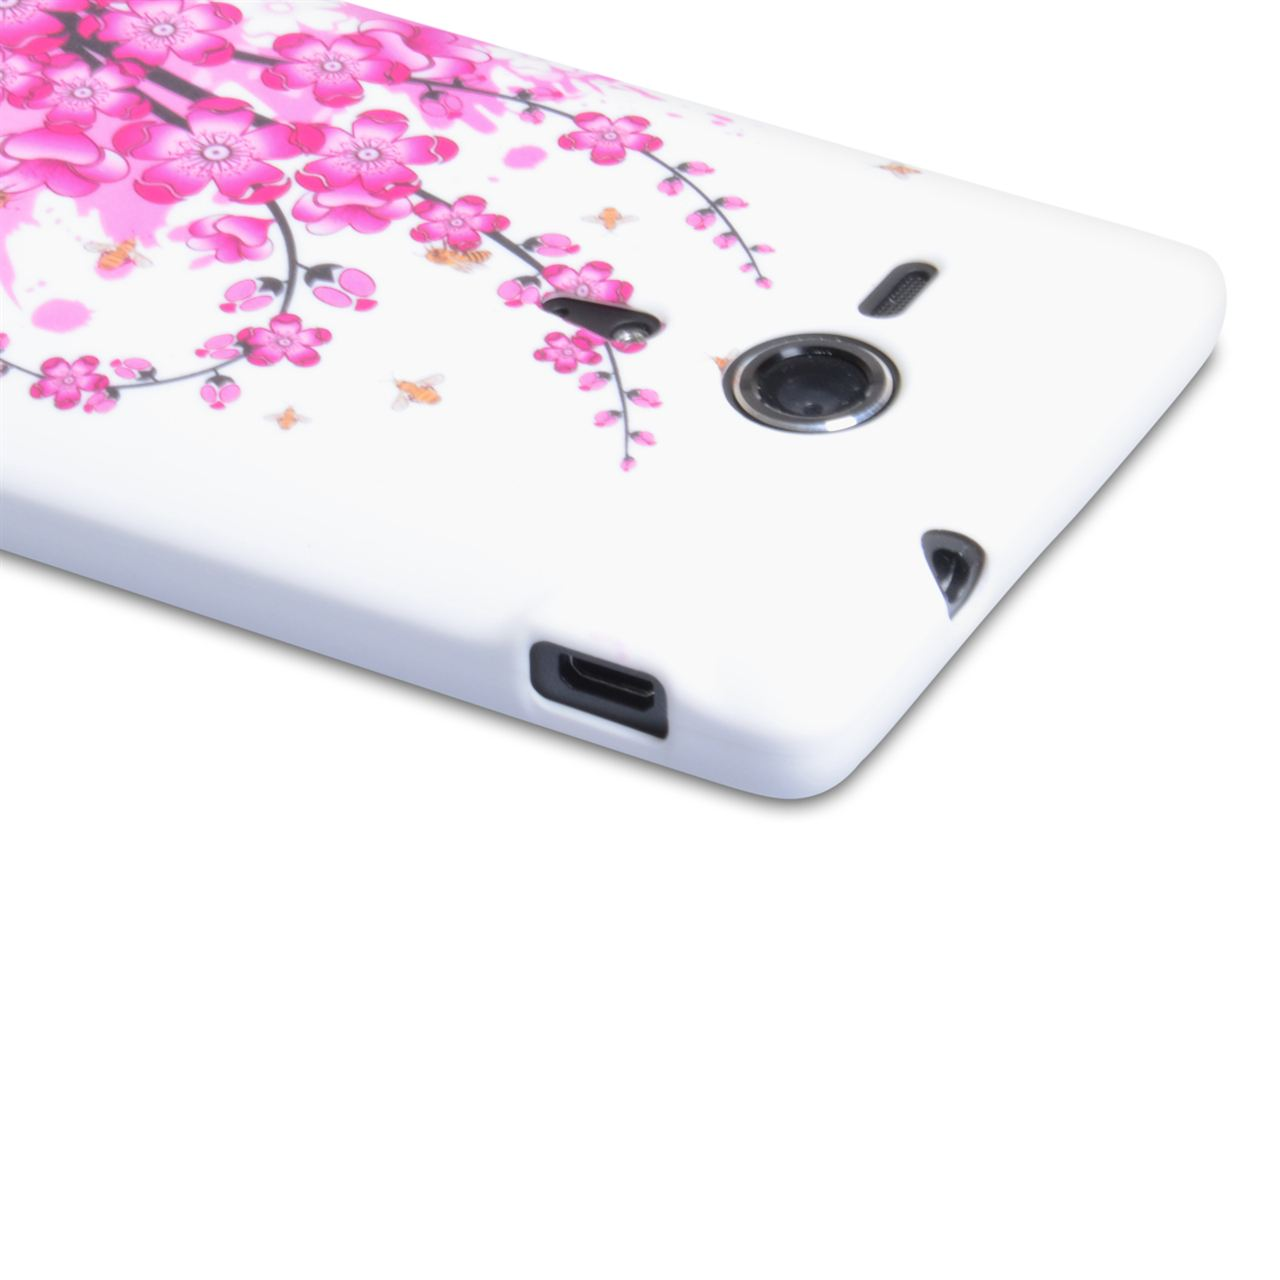 YouSave Accessories Sony Xperia SP Floral Bee Silicone Gel Case